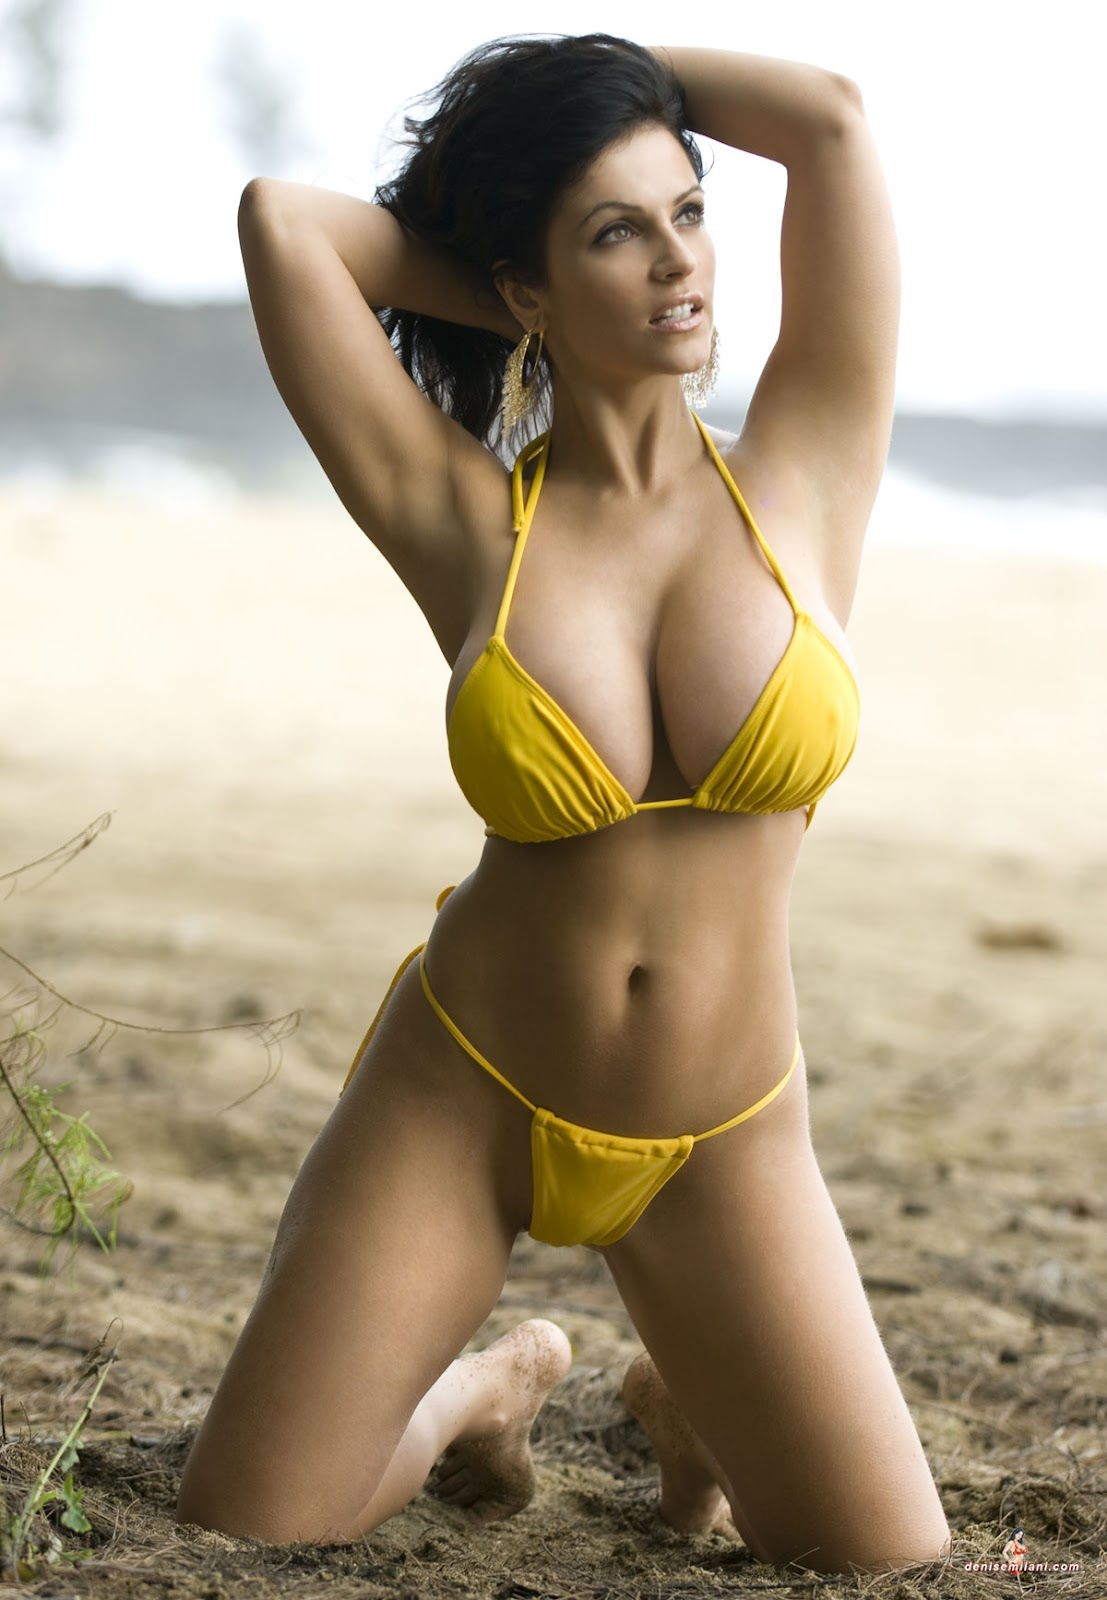 Ashley hot In yellow bikini rabbit